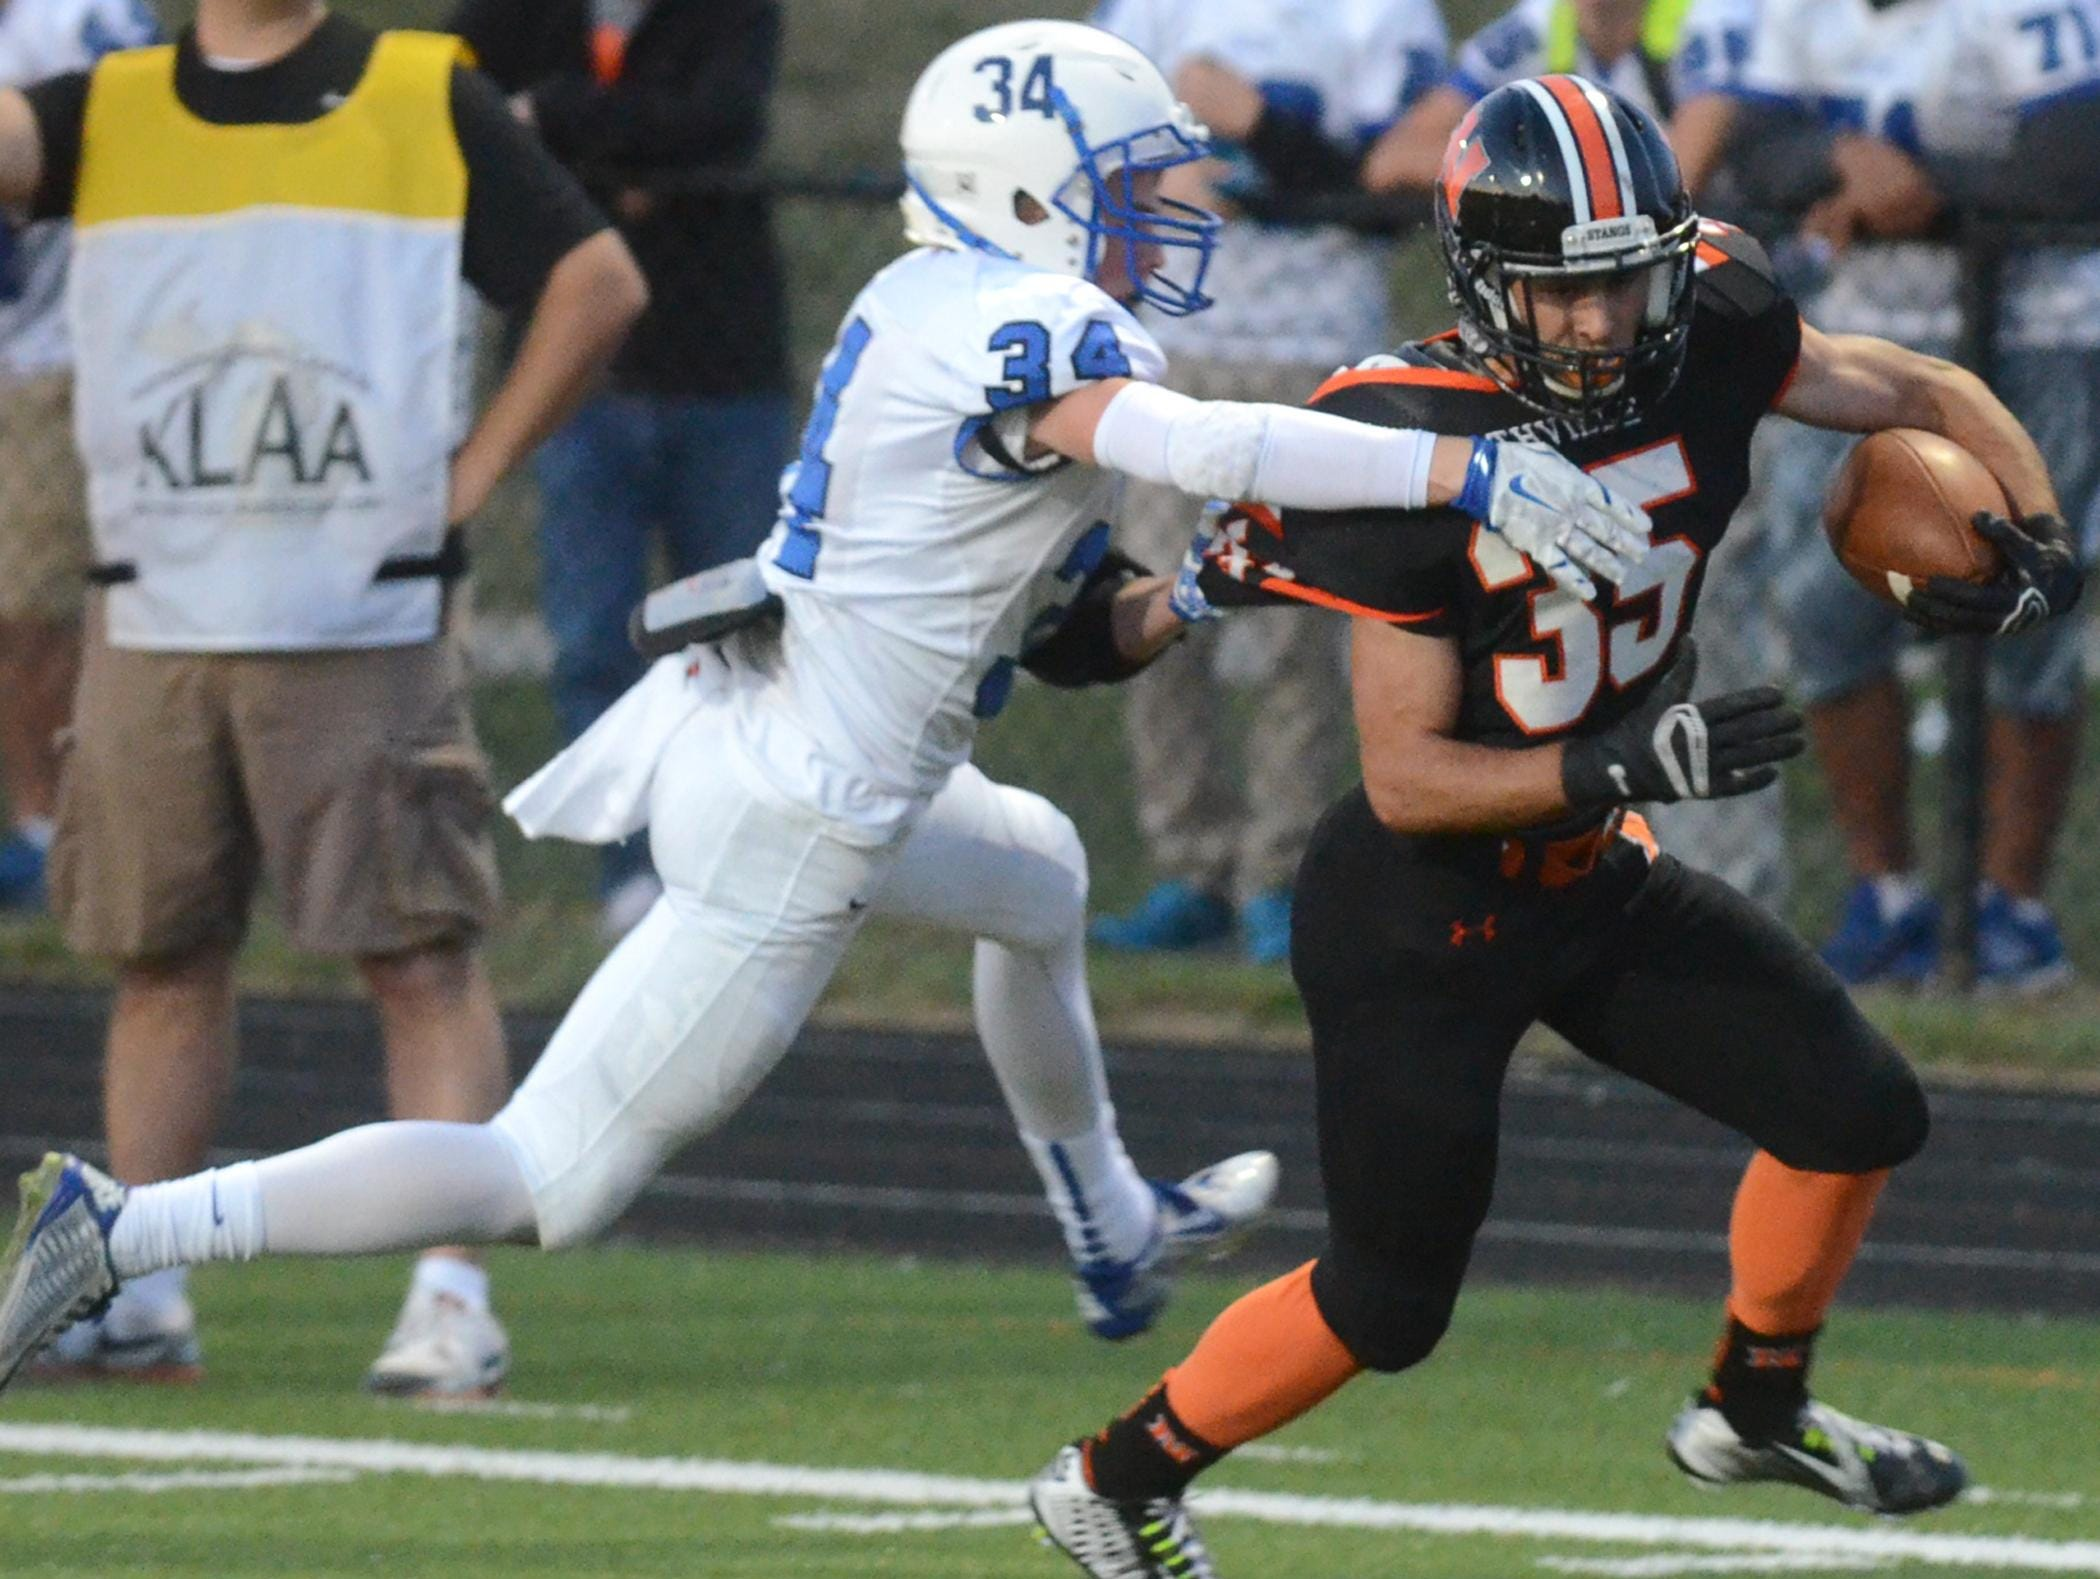 Northville's Adam Ghabra (right) runs the ball against Salem's Jacob Miller.